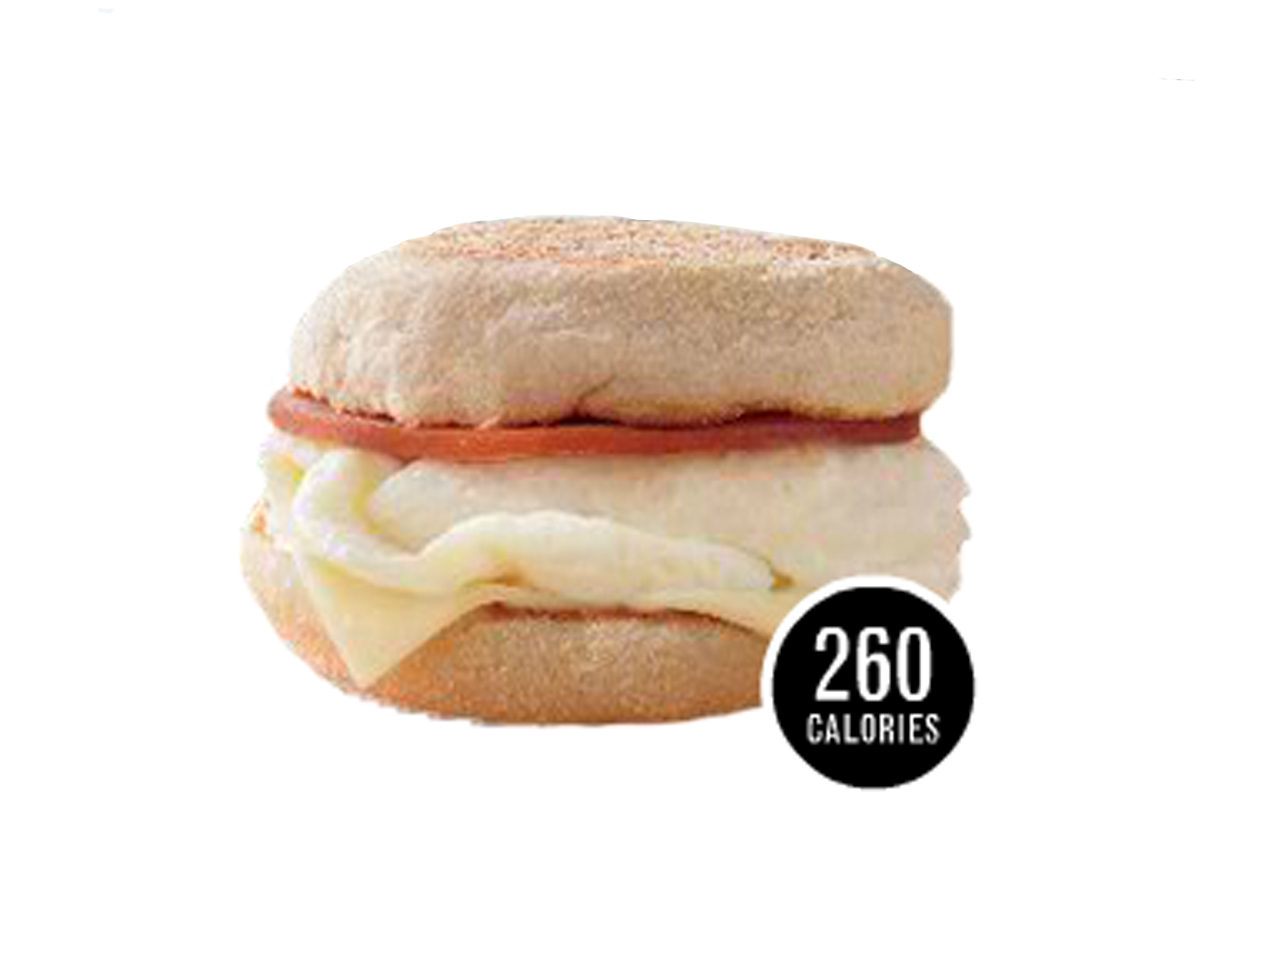 Mcdonalds Introduces The Egg White Delight Yolk Free Egg Mcmuffin Cbs News